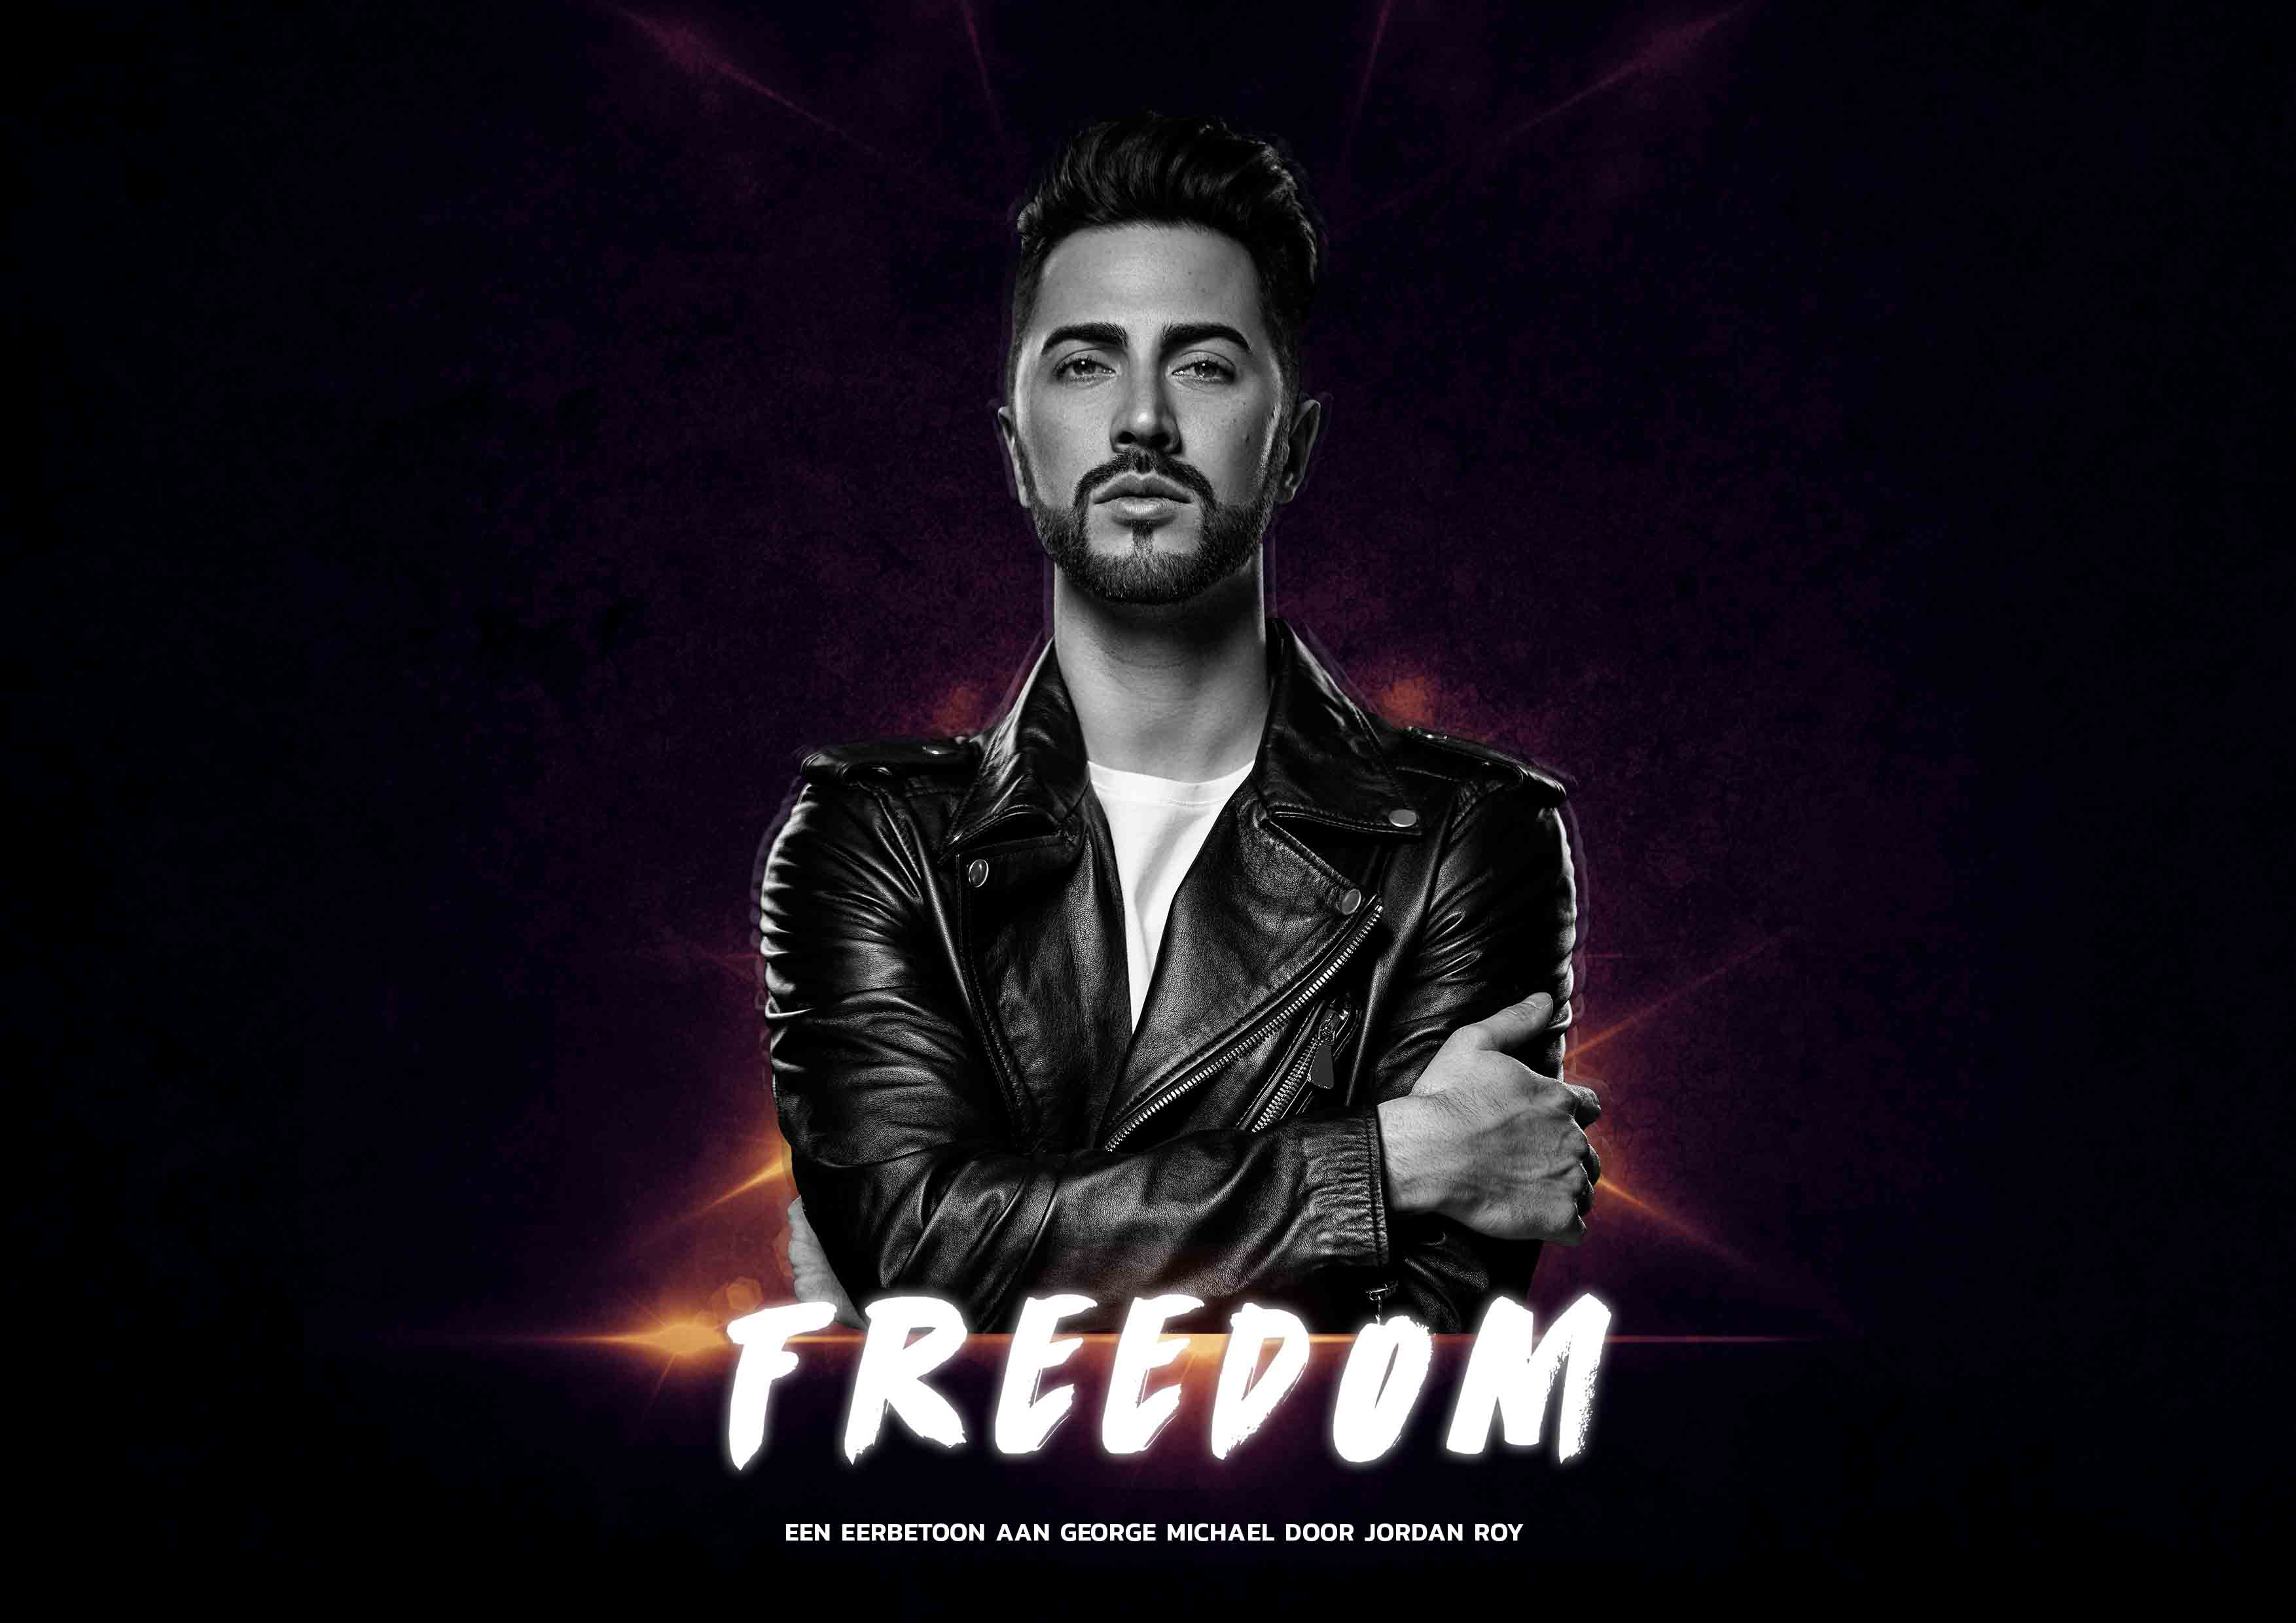 Jordan Roy Freedom Tour